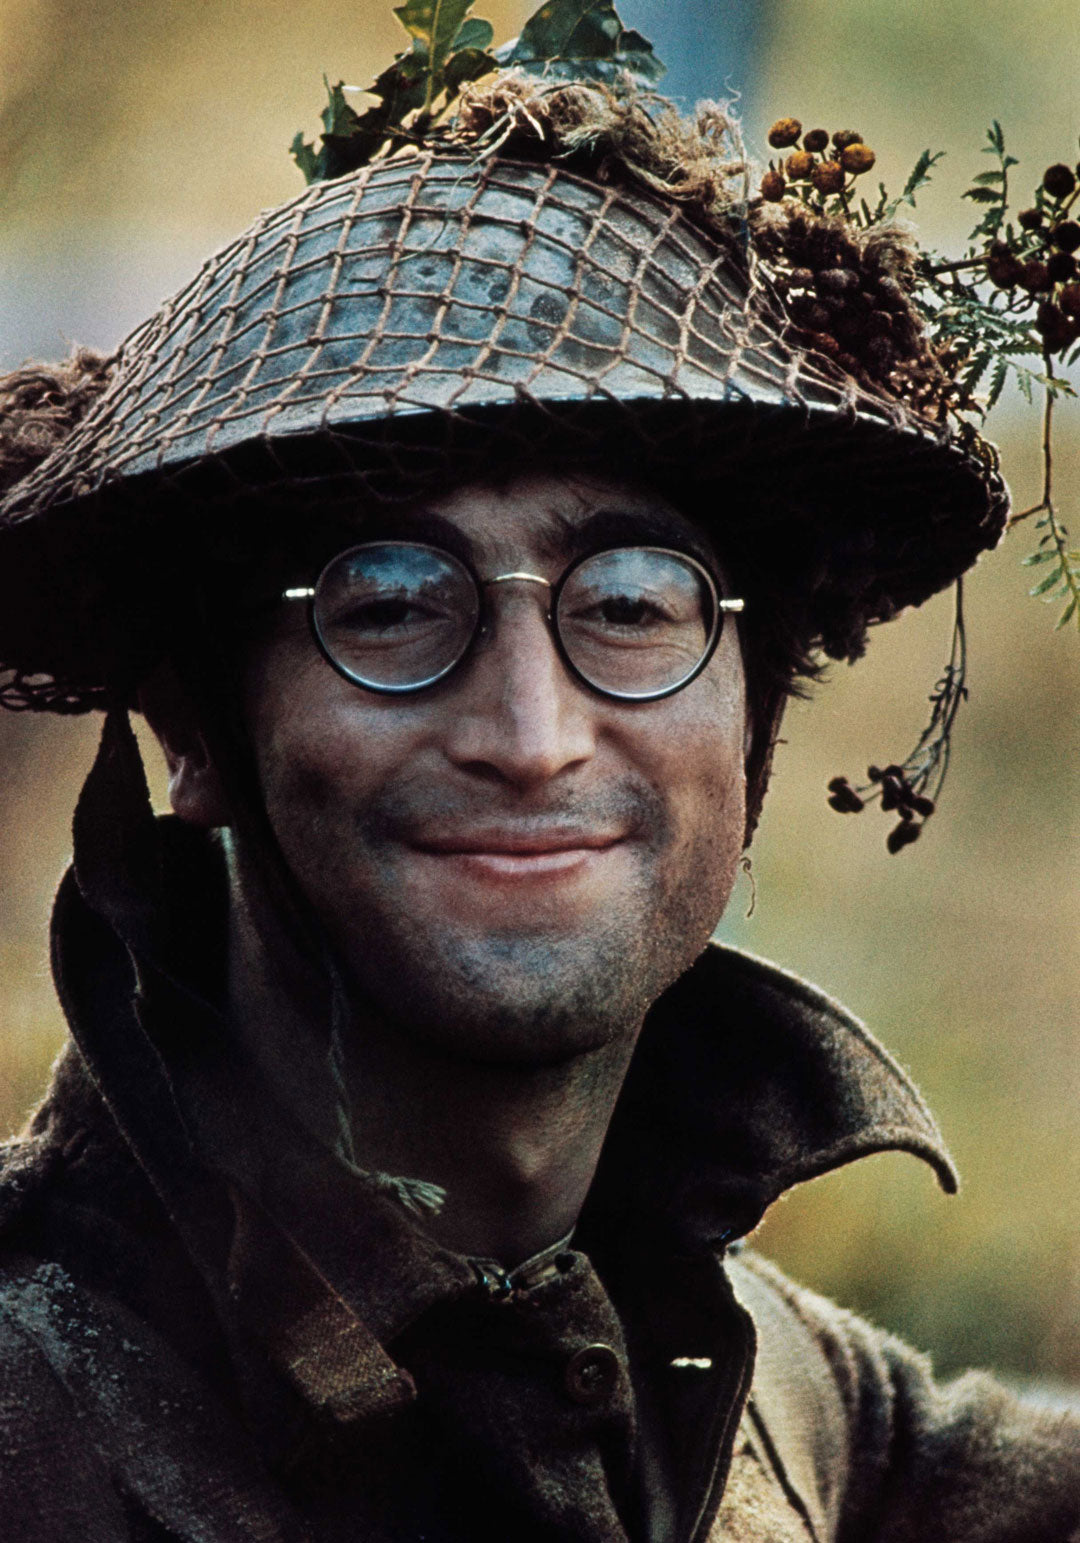 John Lennon wearing army helmet and round wire glasses smiling